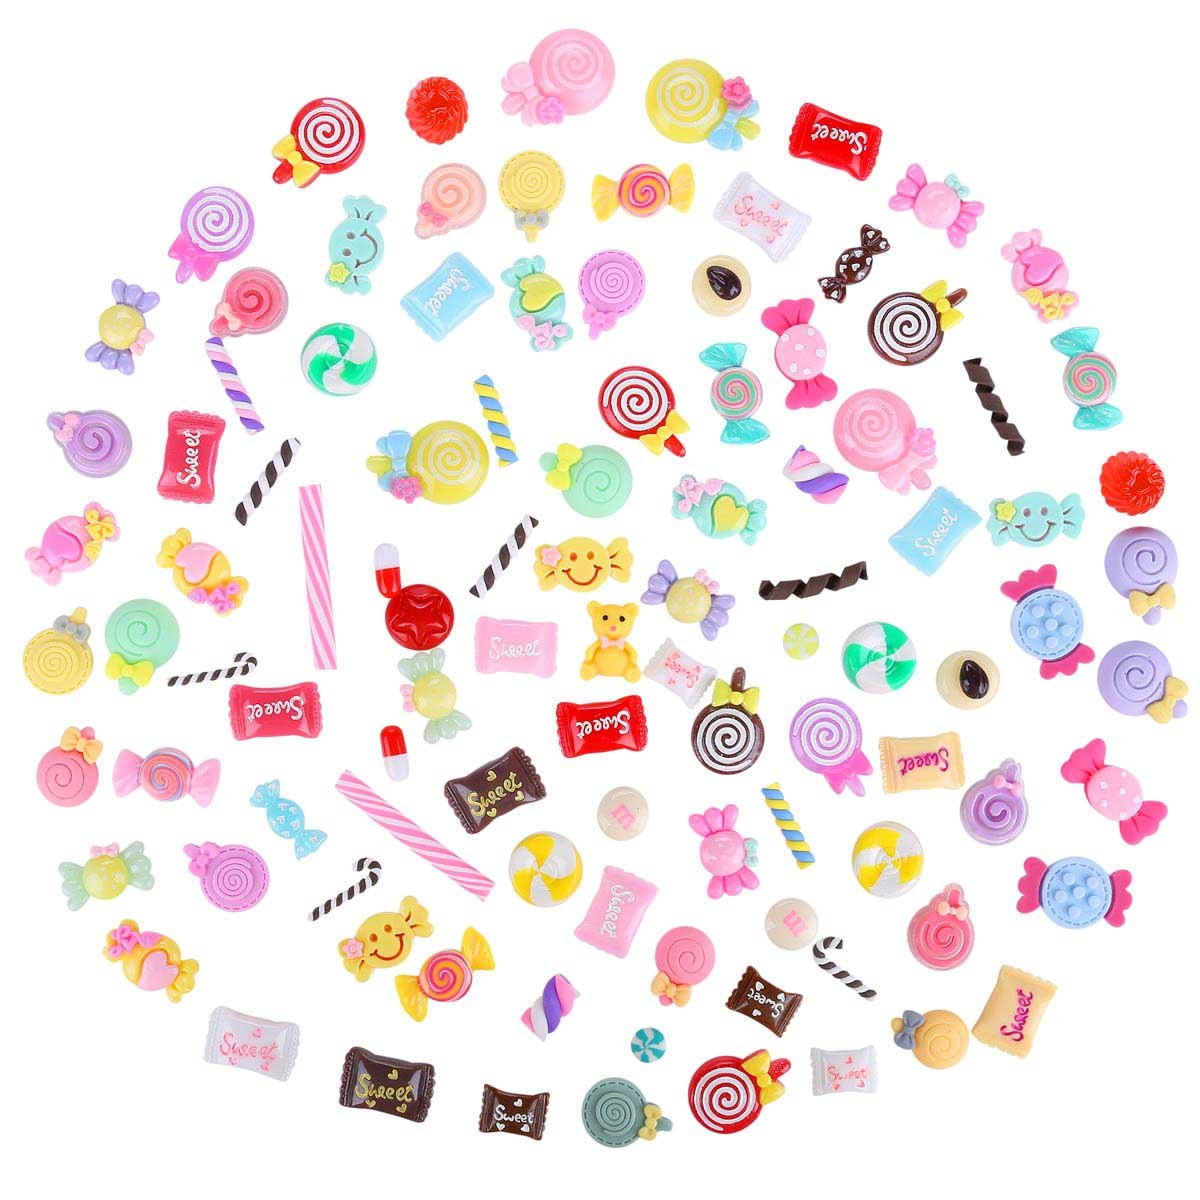 100 Pack Colorful Cute Slime Charms Supplies and Slime Beads Mixed Candy Sweet Resin Flatback for DIY Crafts Accessories Scrapbooking Tbestmax